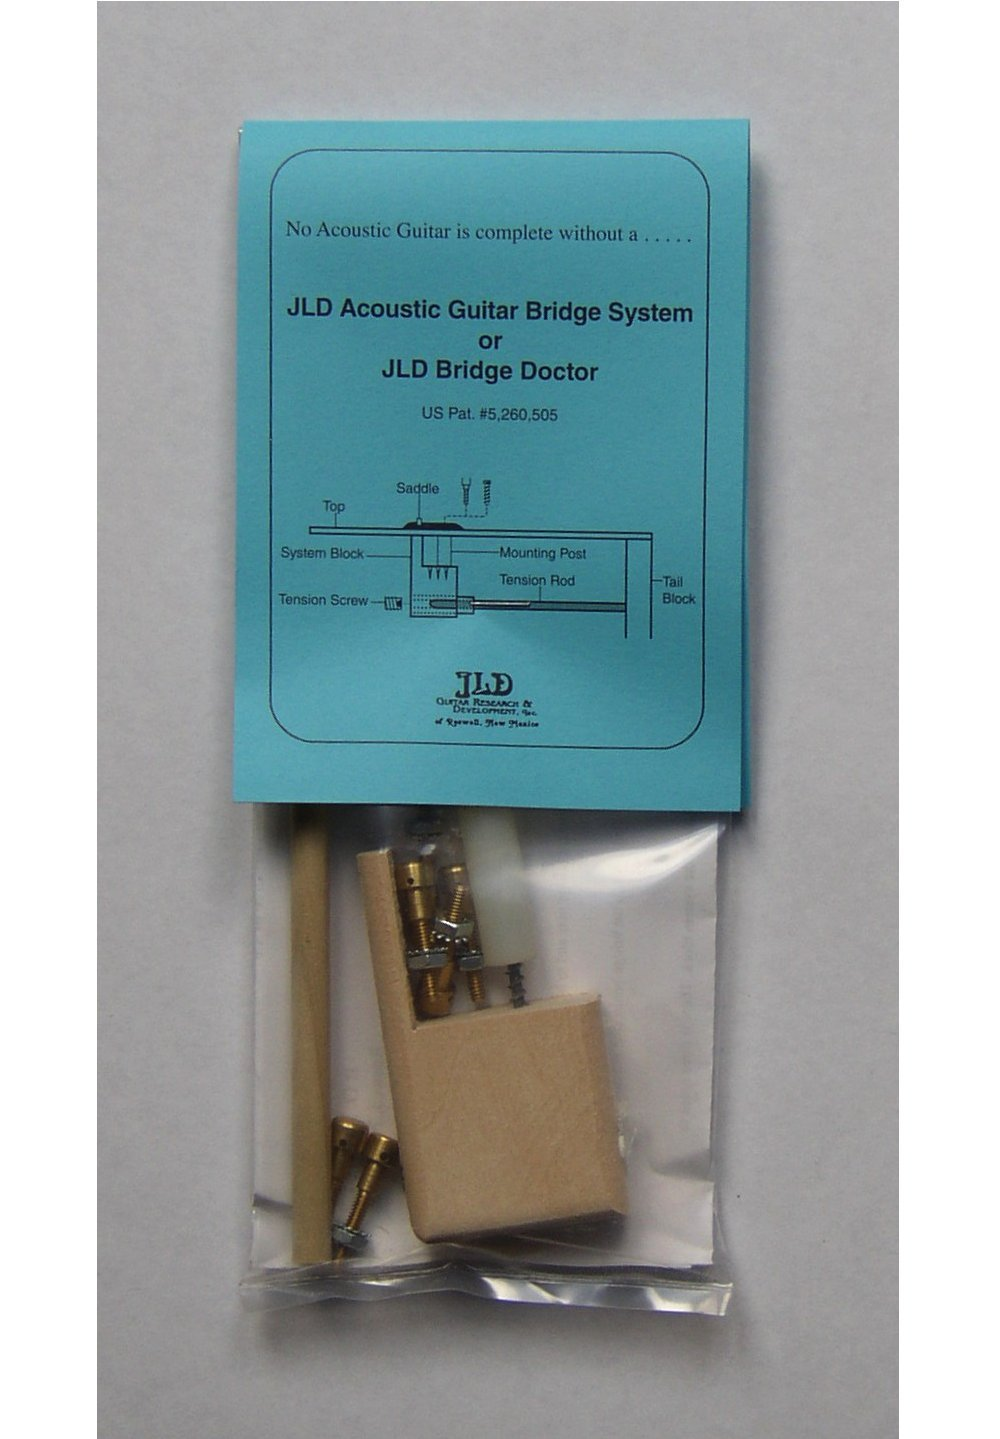 Bridge Pins For Fuse Box Guide And Troubleshooting Of Wiring Diagram Library Rh 18 Codingcommunity De 1a Robotics Lincoln